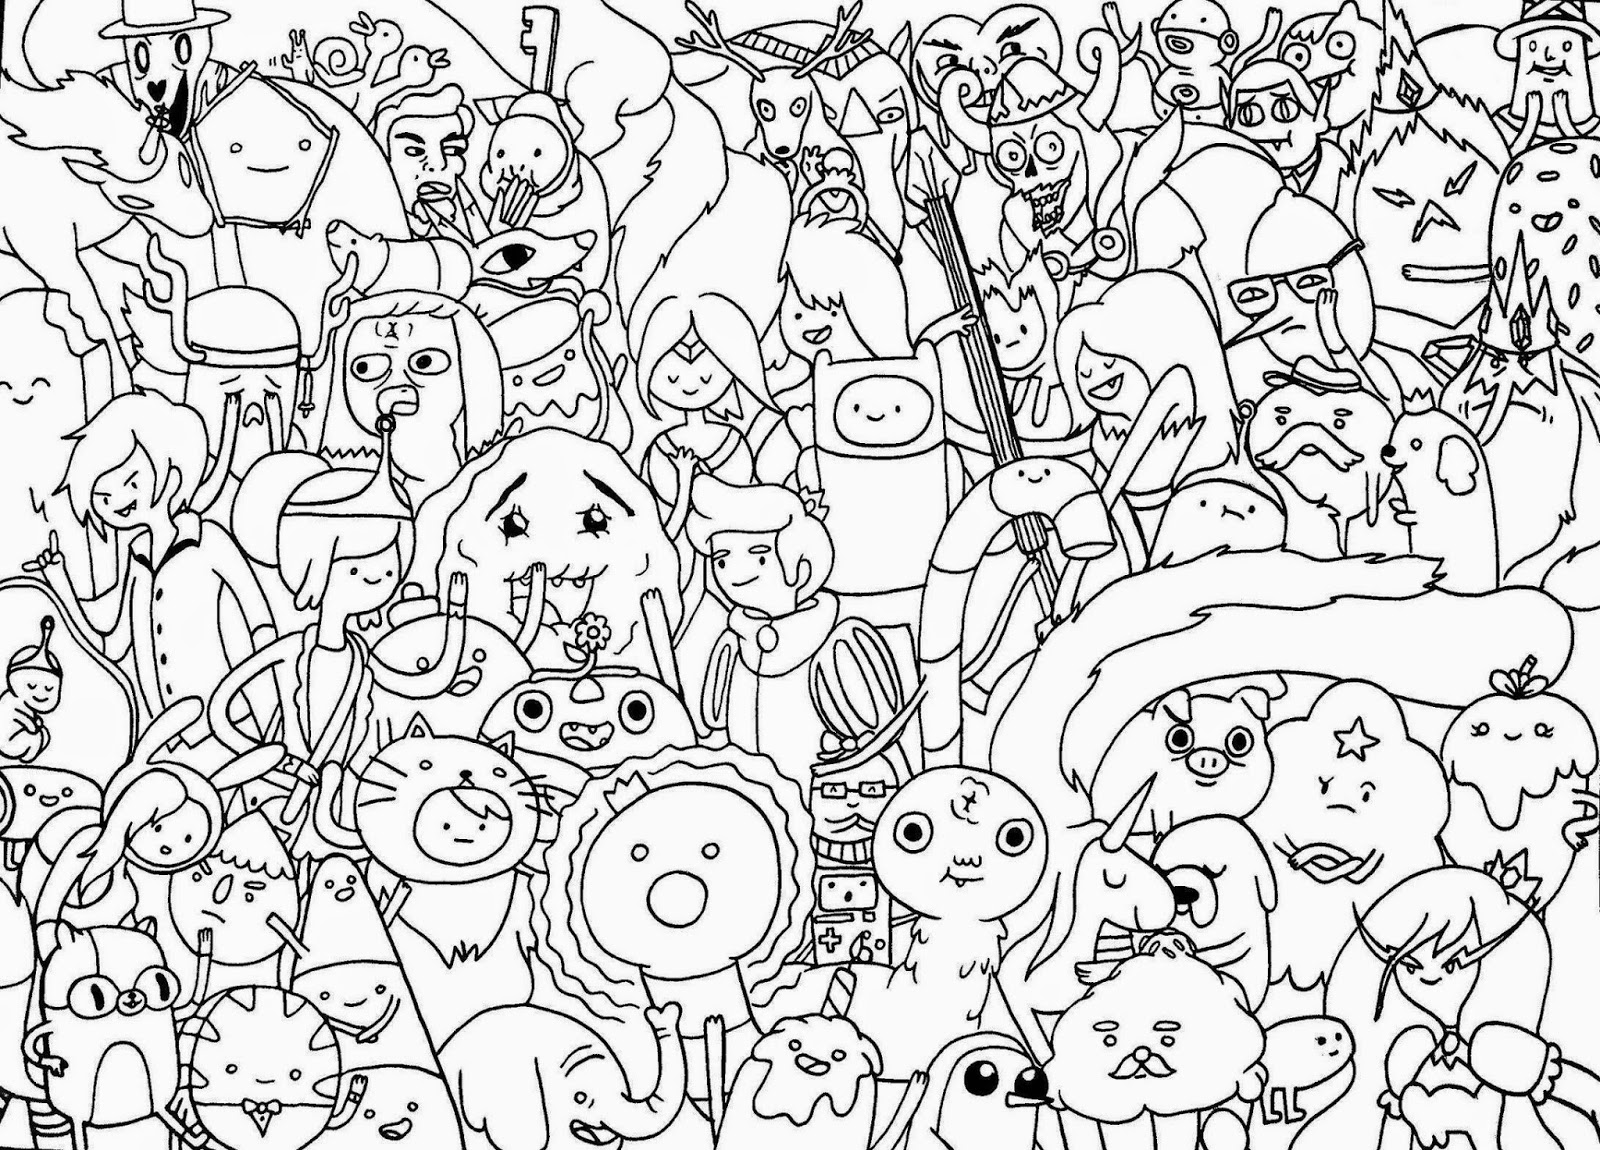 coloring pages of adventure time - photo#29